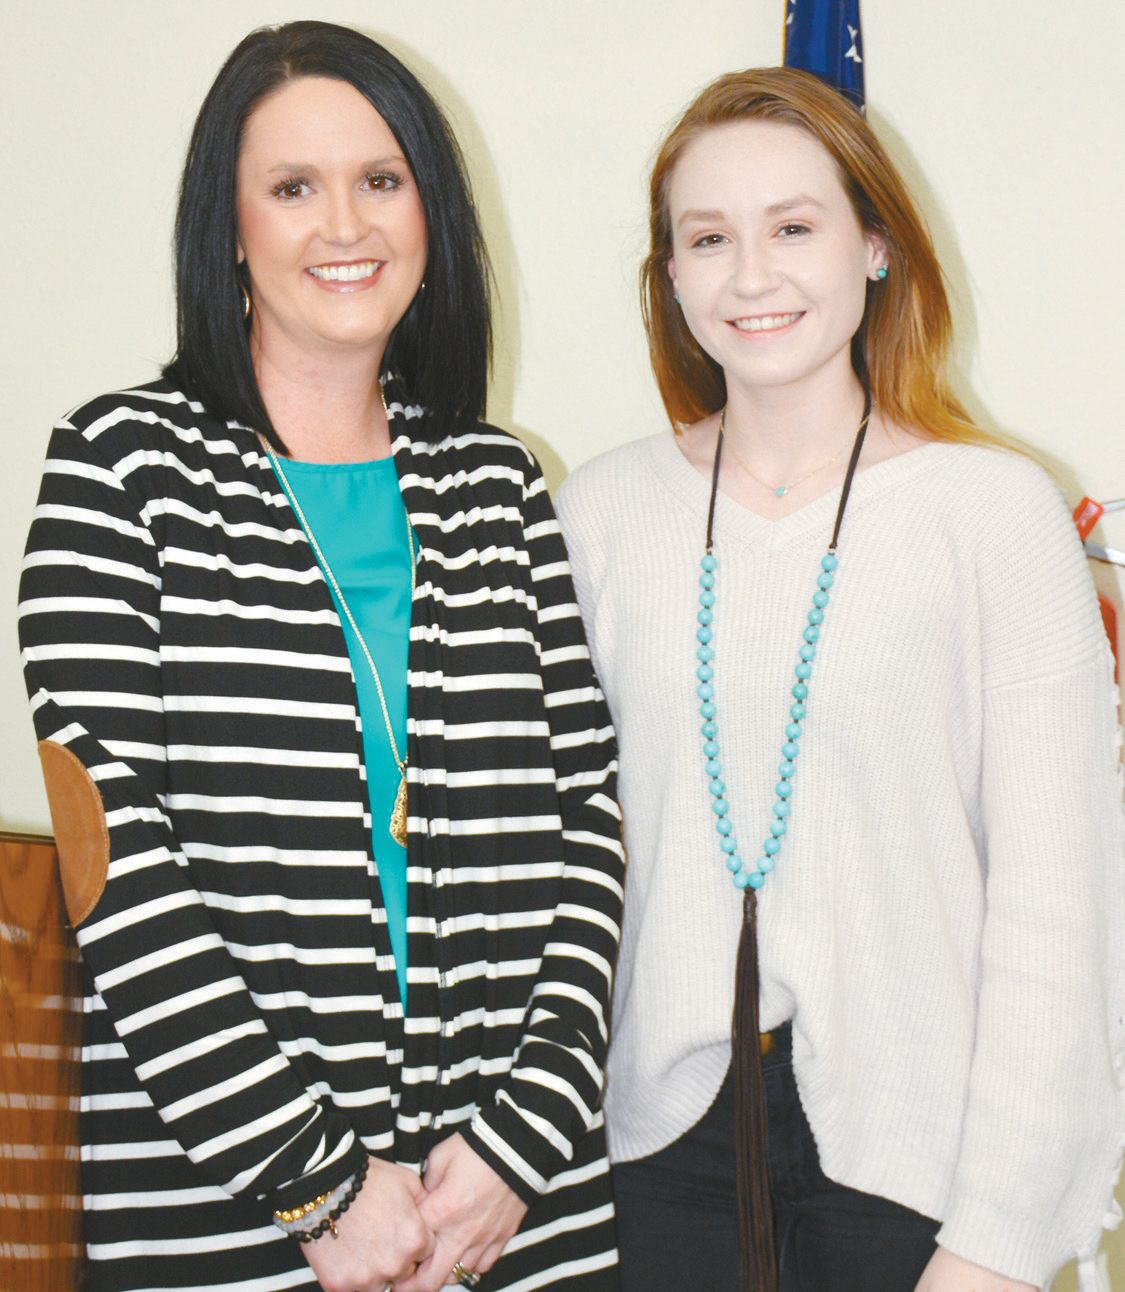 CHS Student of the Month Amber Smith Honored